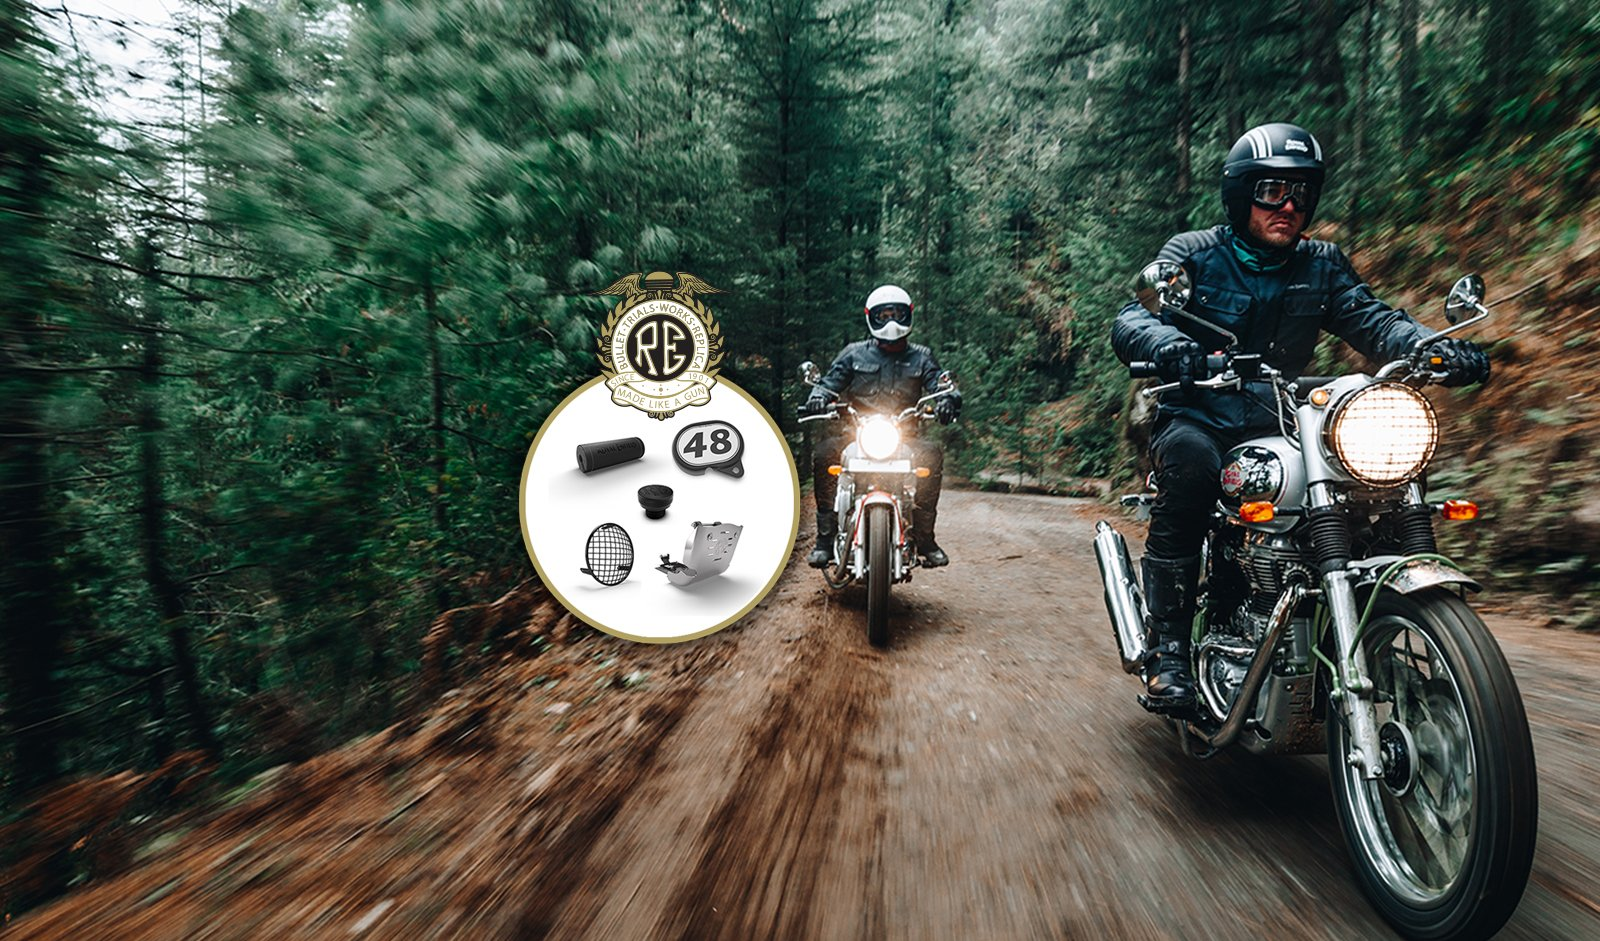 two royal enfield bullet trials motorcycles riding through the forest